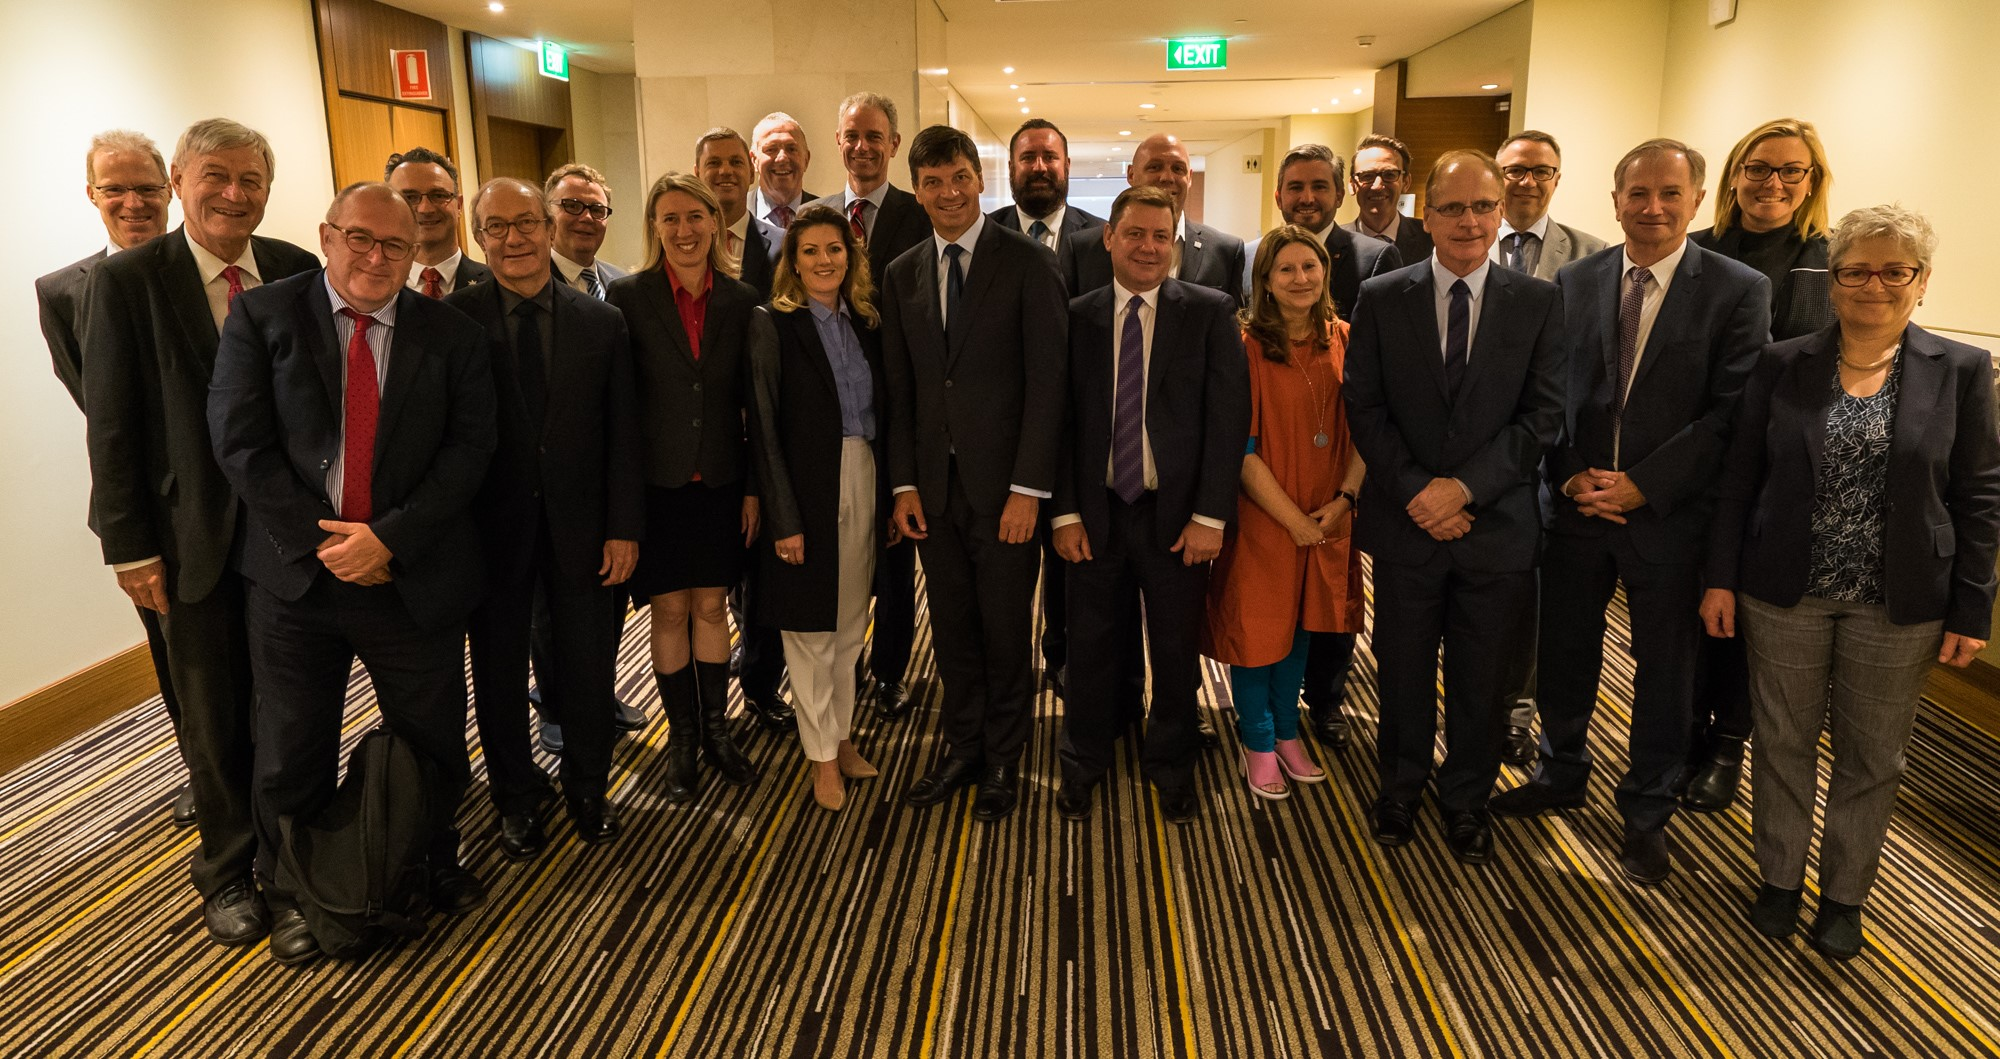 Attendees at the first meeting of the Cities Reference Group, 26 April 2017